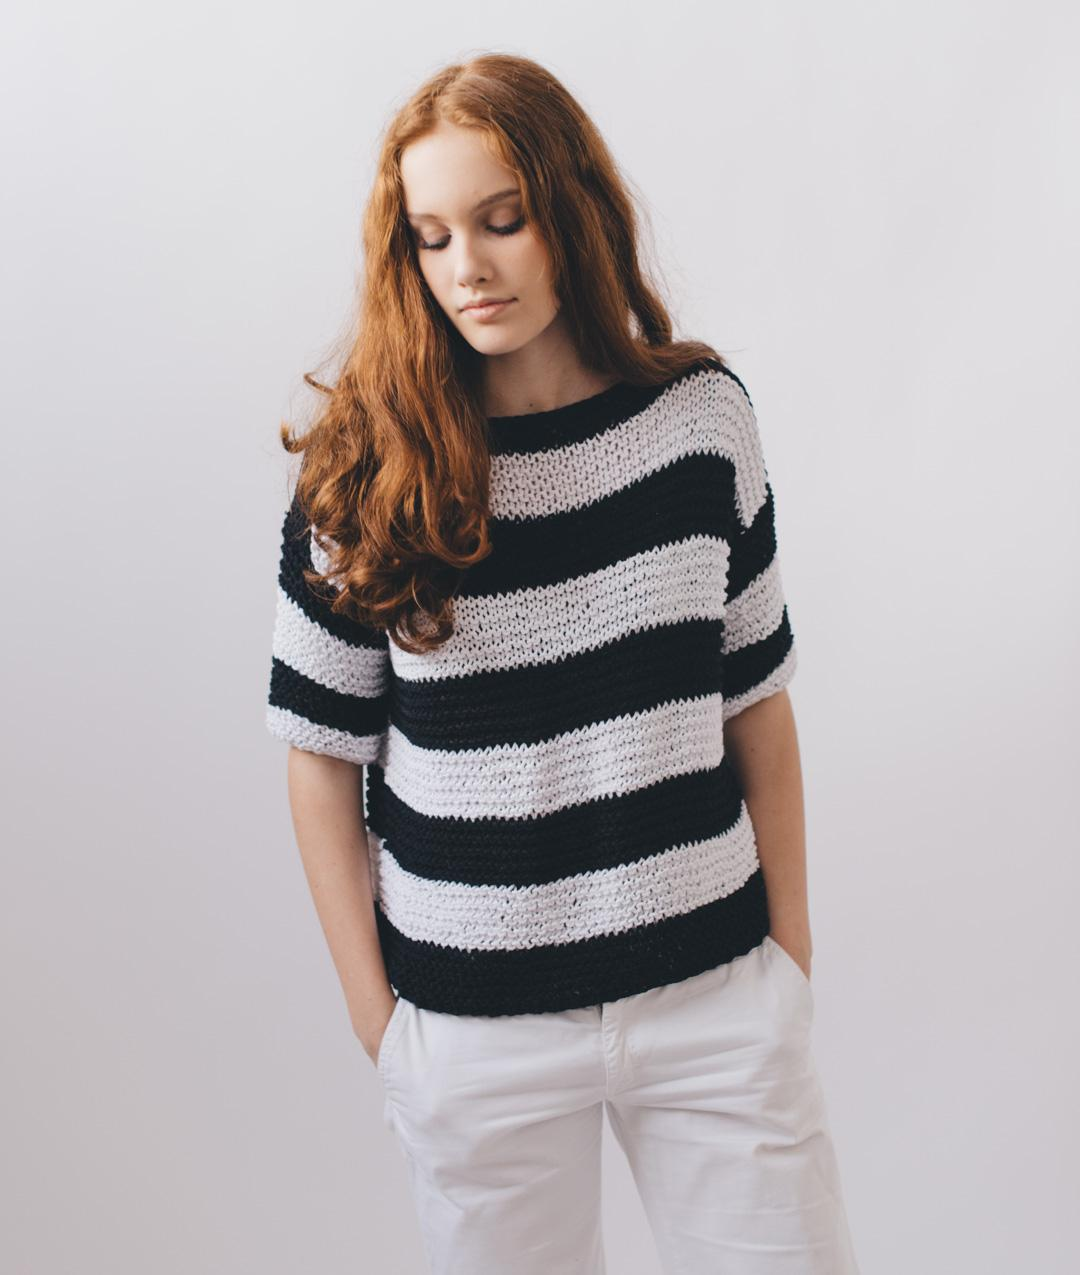 Sweaters and Tops - Cotton - Elly Tee - 1